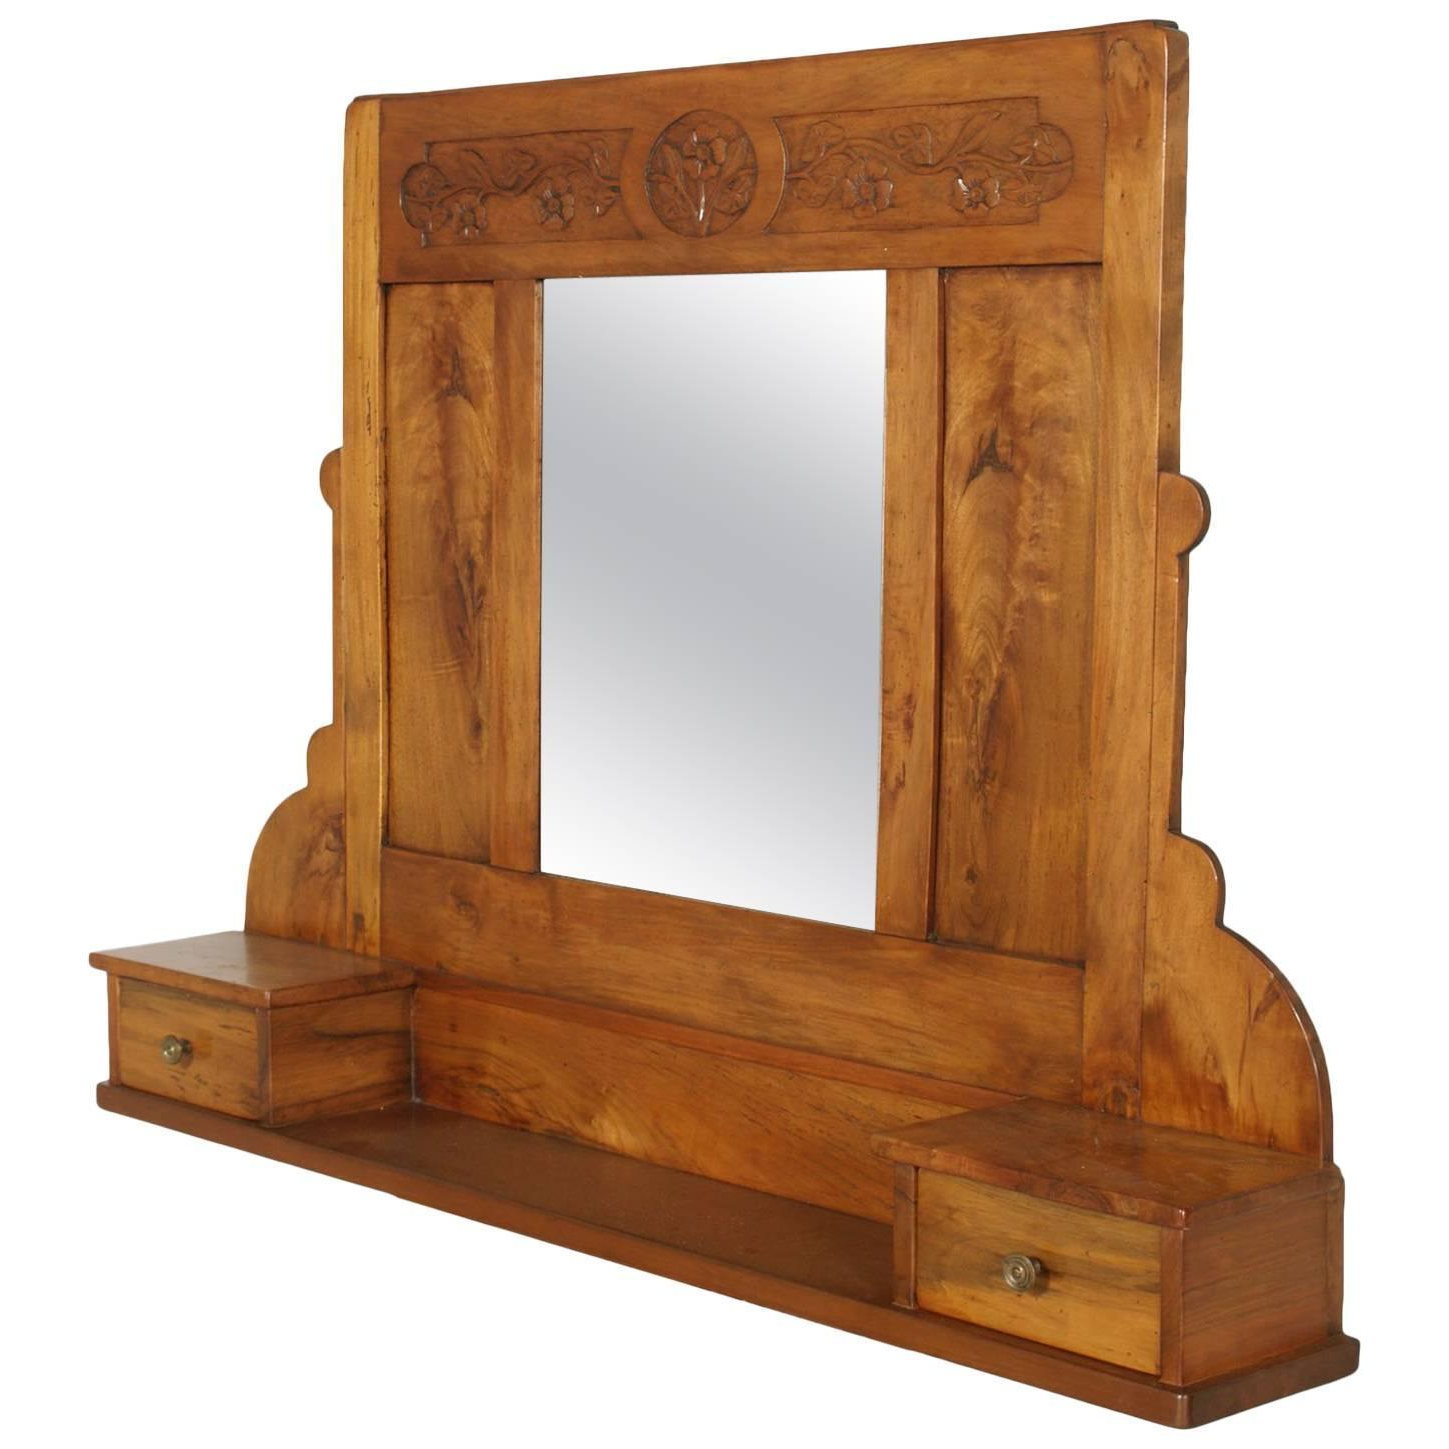 Fashionable Wall Mirrors With Drawers With Regard To Art Nouveau Wall Mirror In Hand Carved Blond Walnut With Shelf And Two Drawers (View 10 of 20)